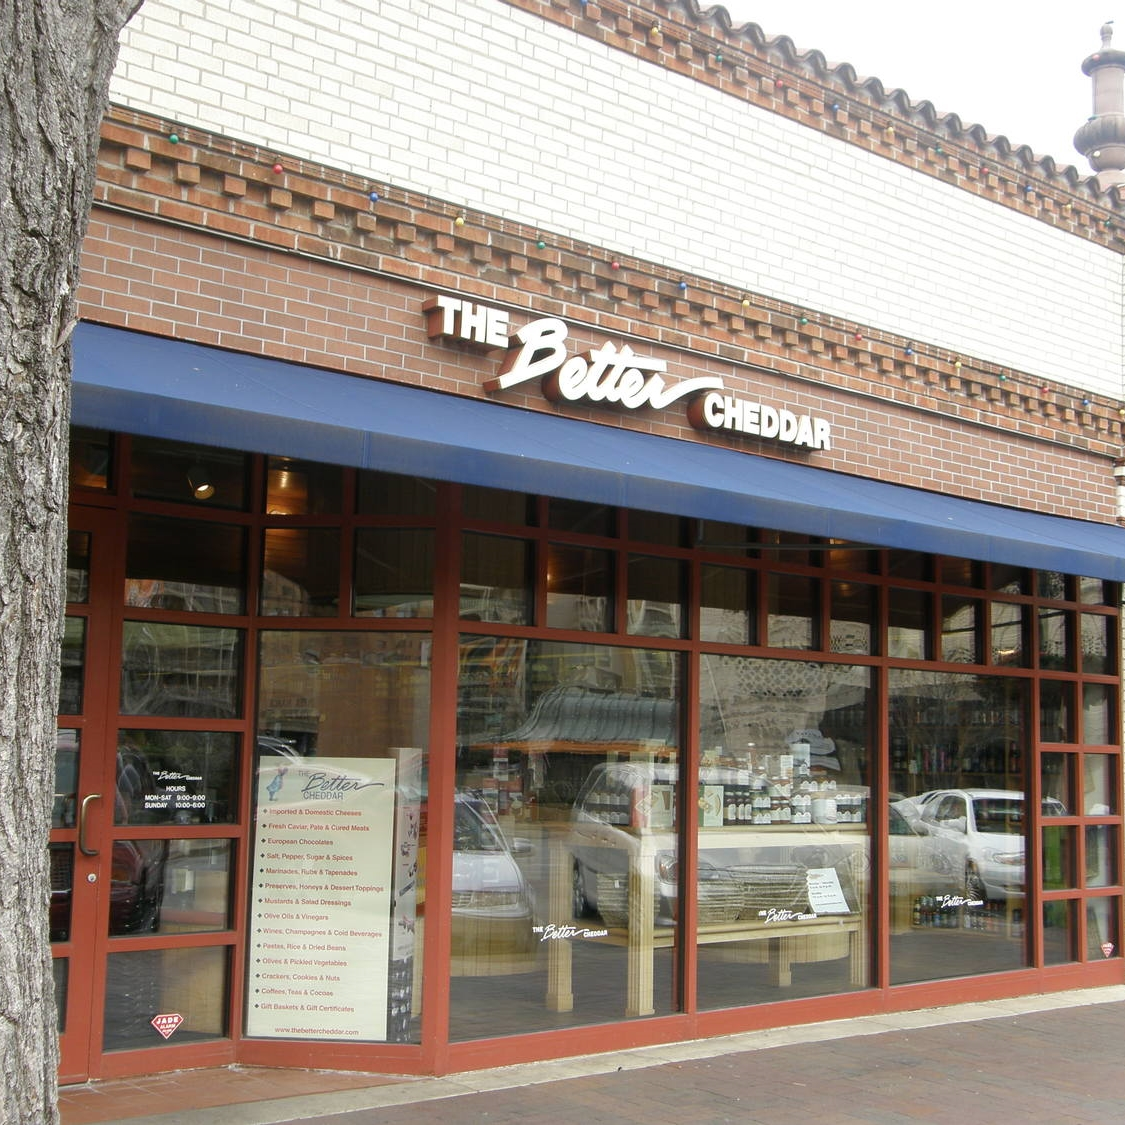 The Better Cheddar   604 W. 48th St., KCMO // #5 On The Mall, Prairie Village Kansas